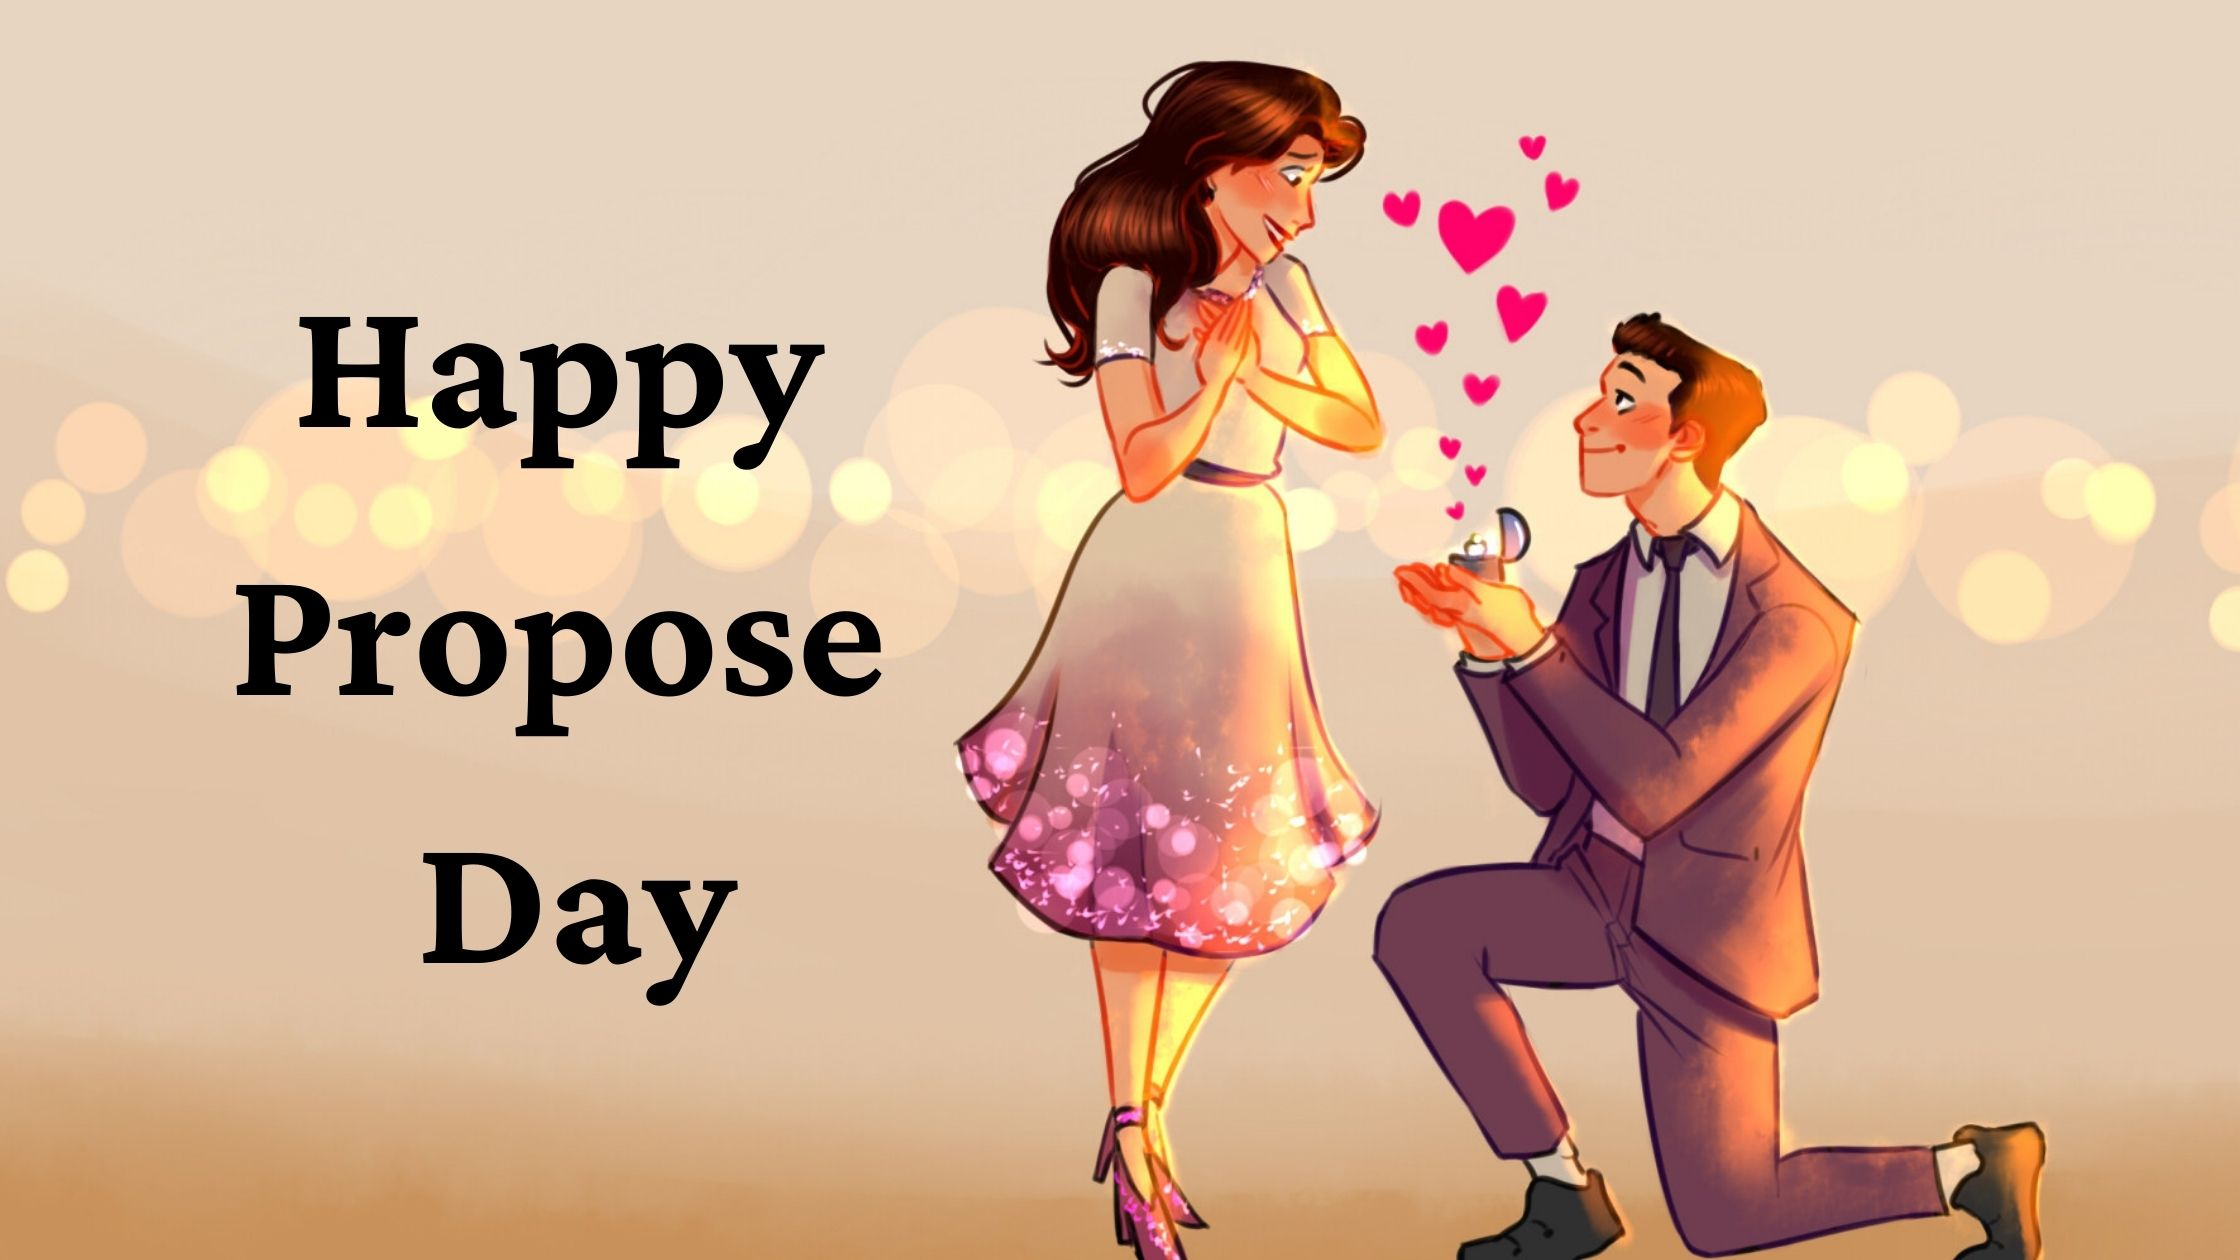 Happy Propose Day Quotes, Wishes, and Messages